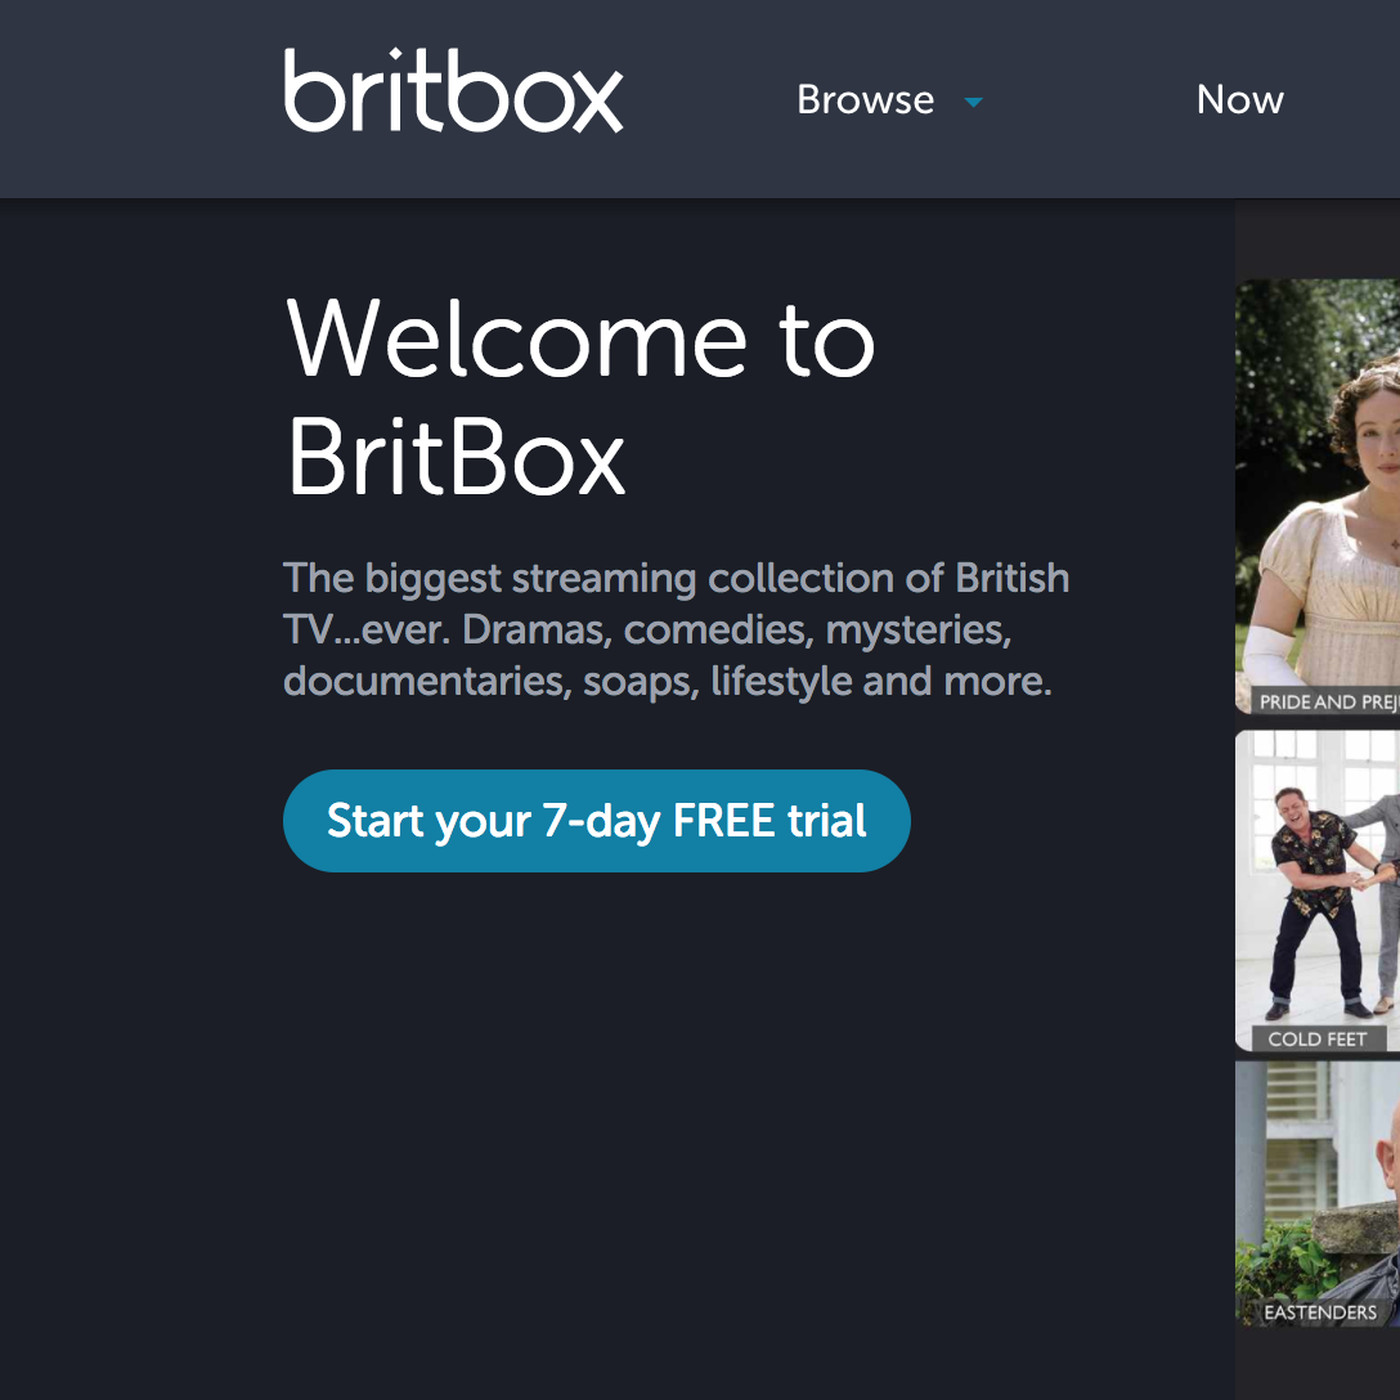 BritBox, a streaming service for British TV from BBC and ITV